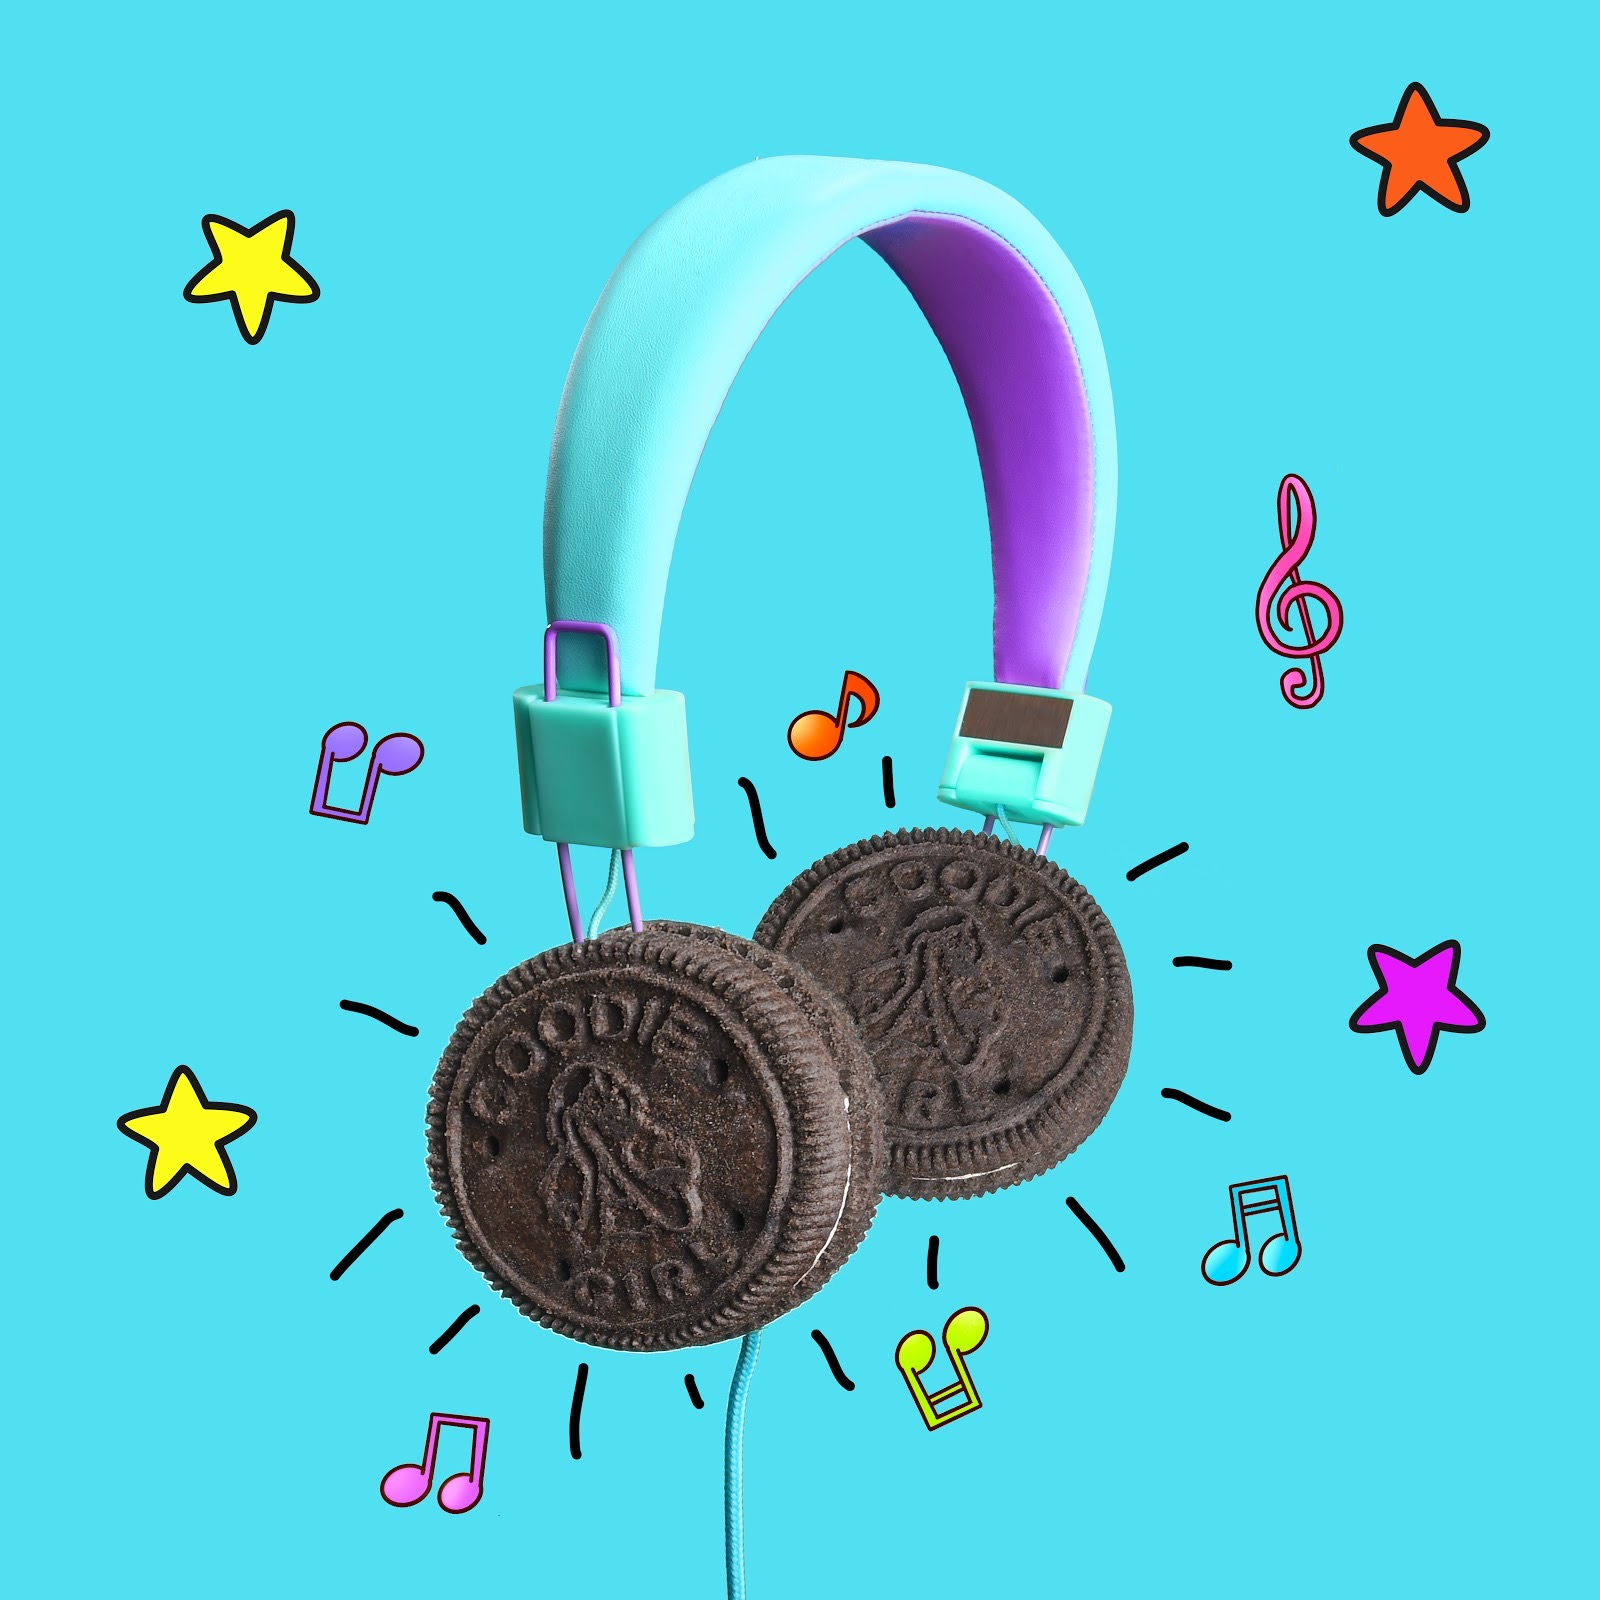 Goodie GIrl Cookies as headphones on blue backdrop